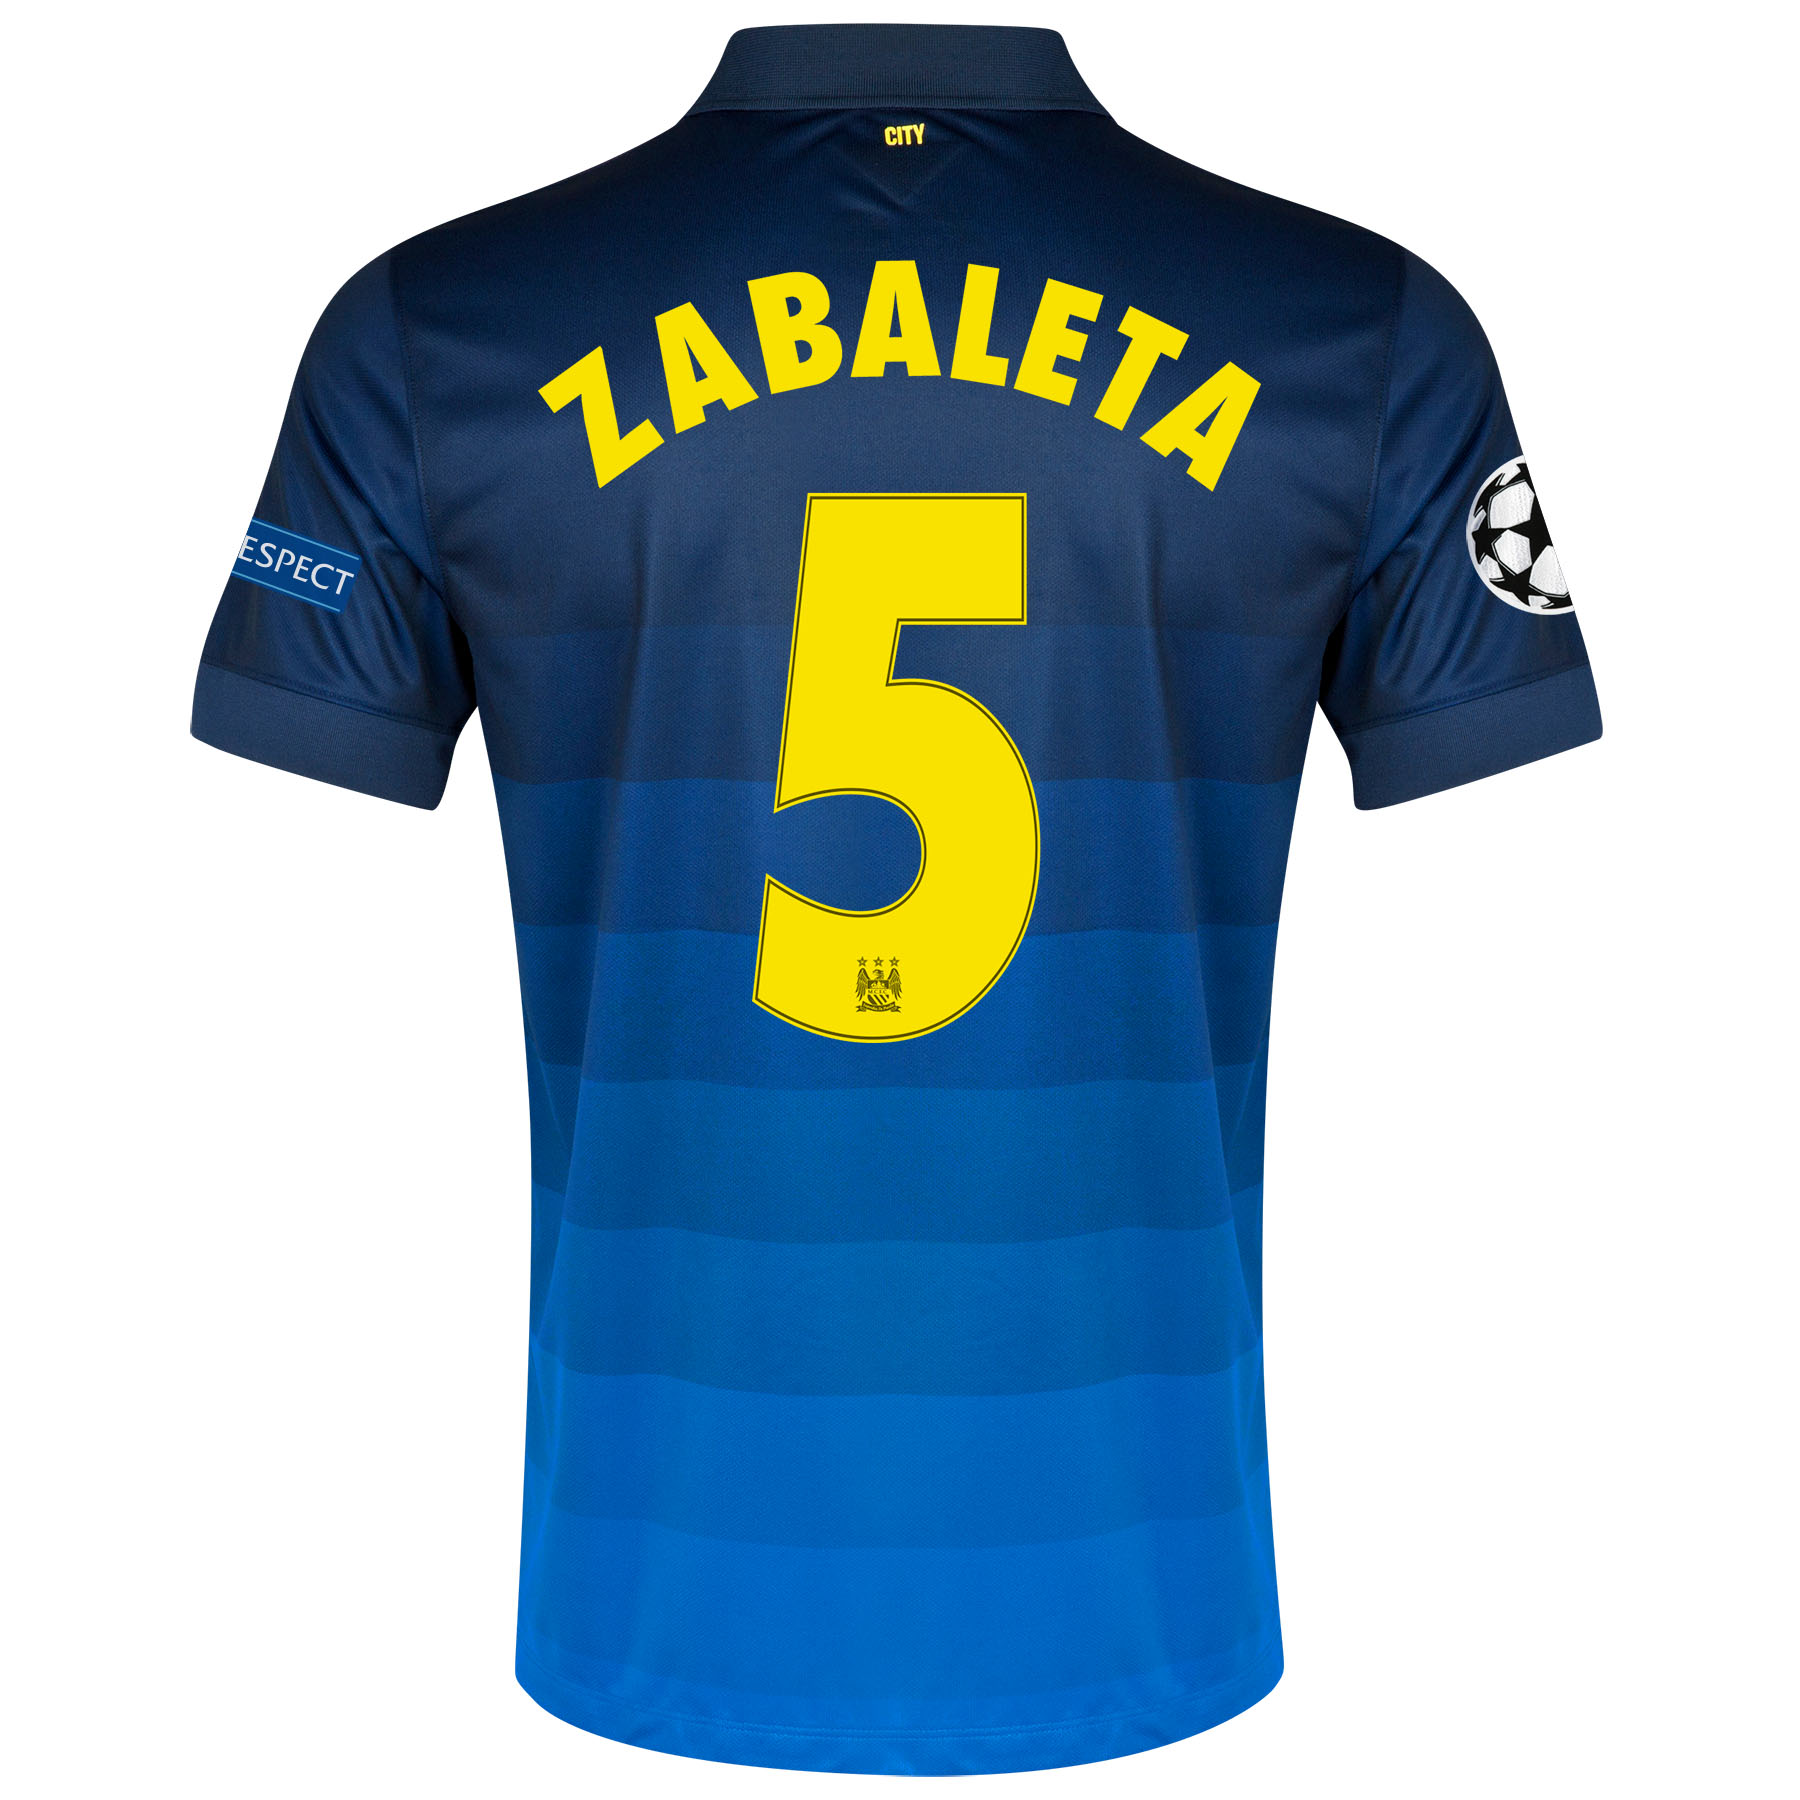 Manchester City UEFA Champions League Away Shirt 2014/15 - Kids with Zabaleta 5 printing